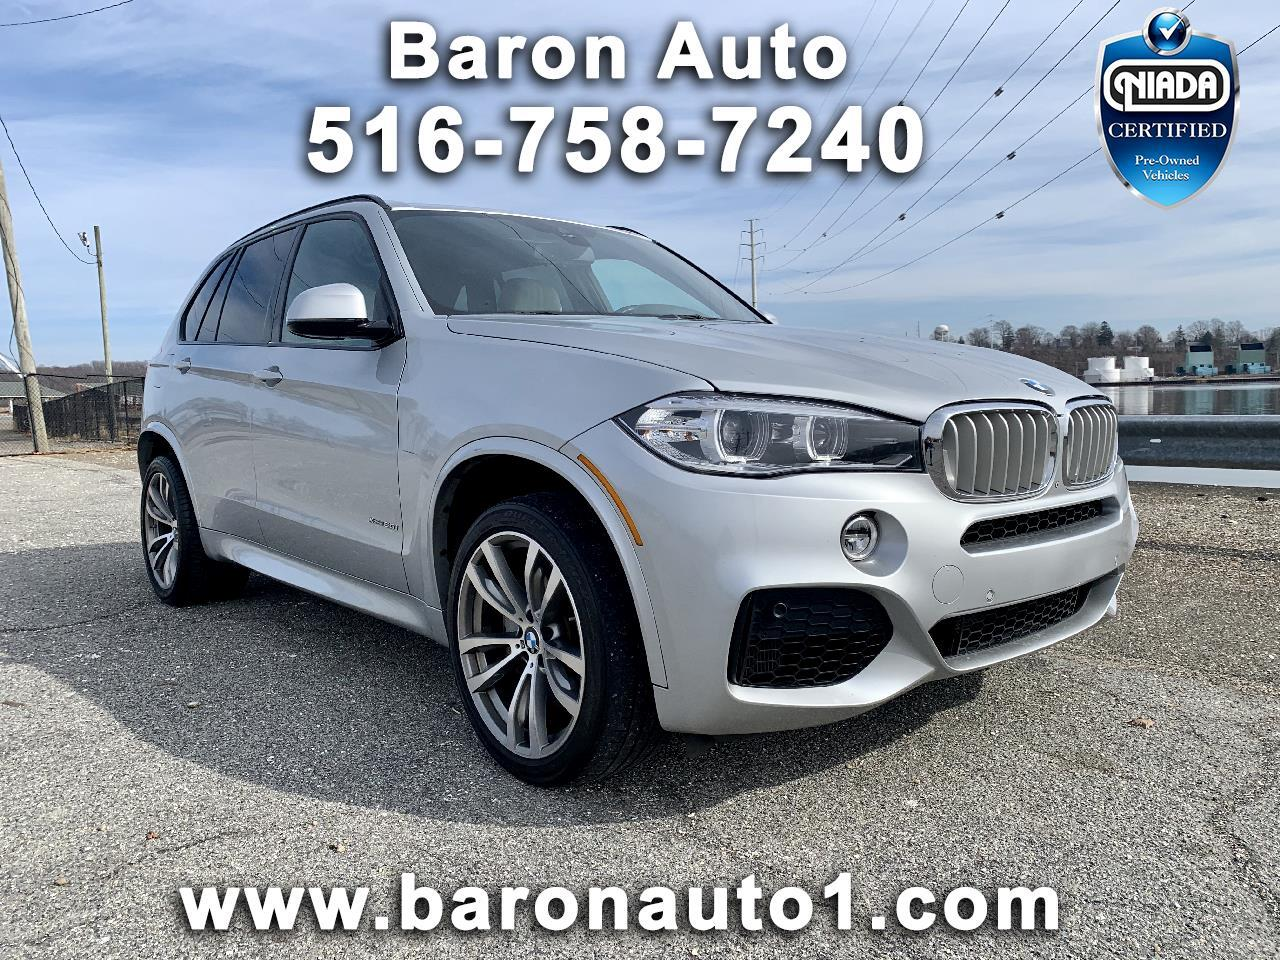 BMW X5 AWD 4dr xDrive50i 2015